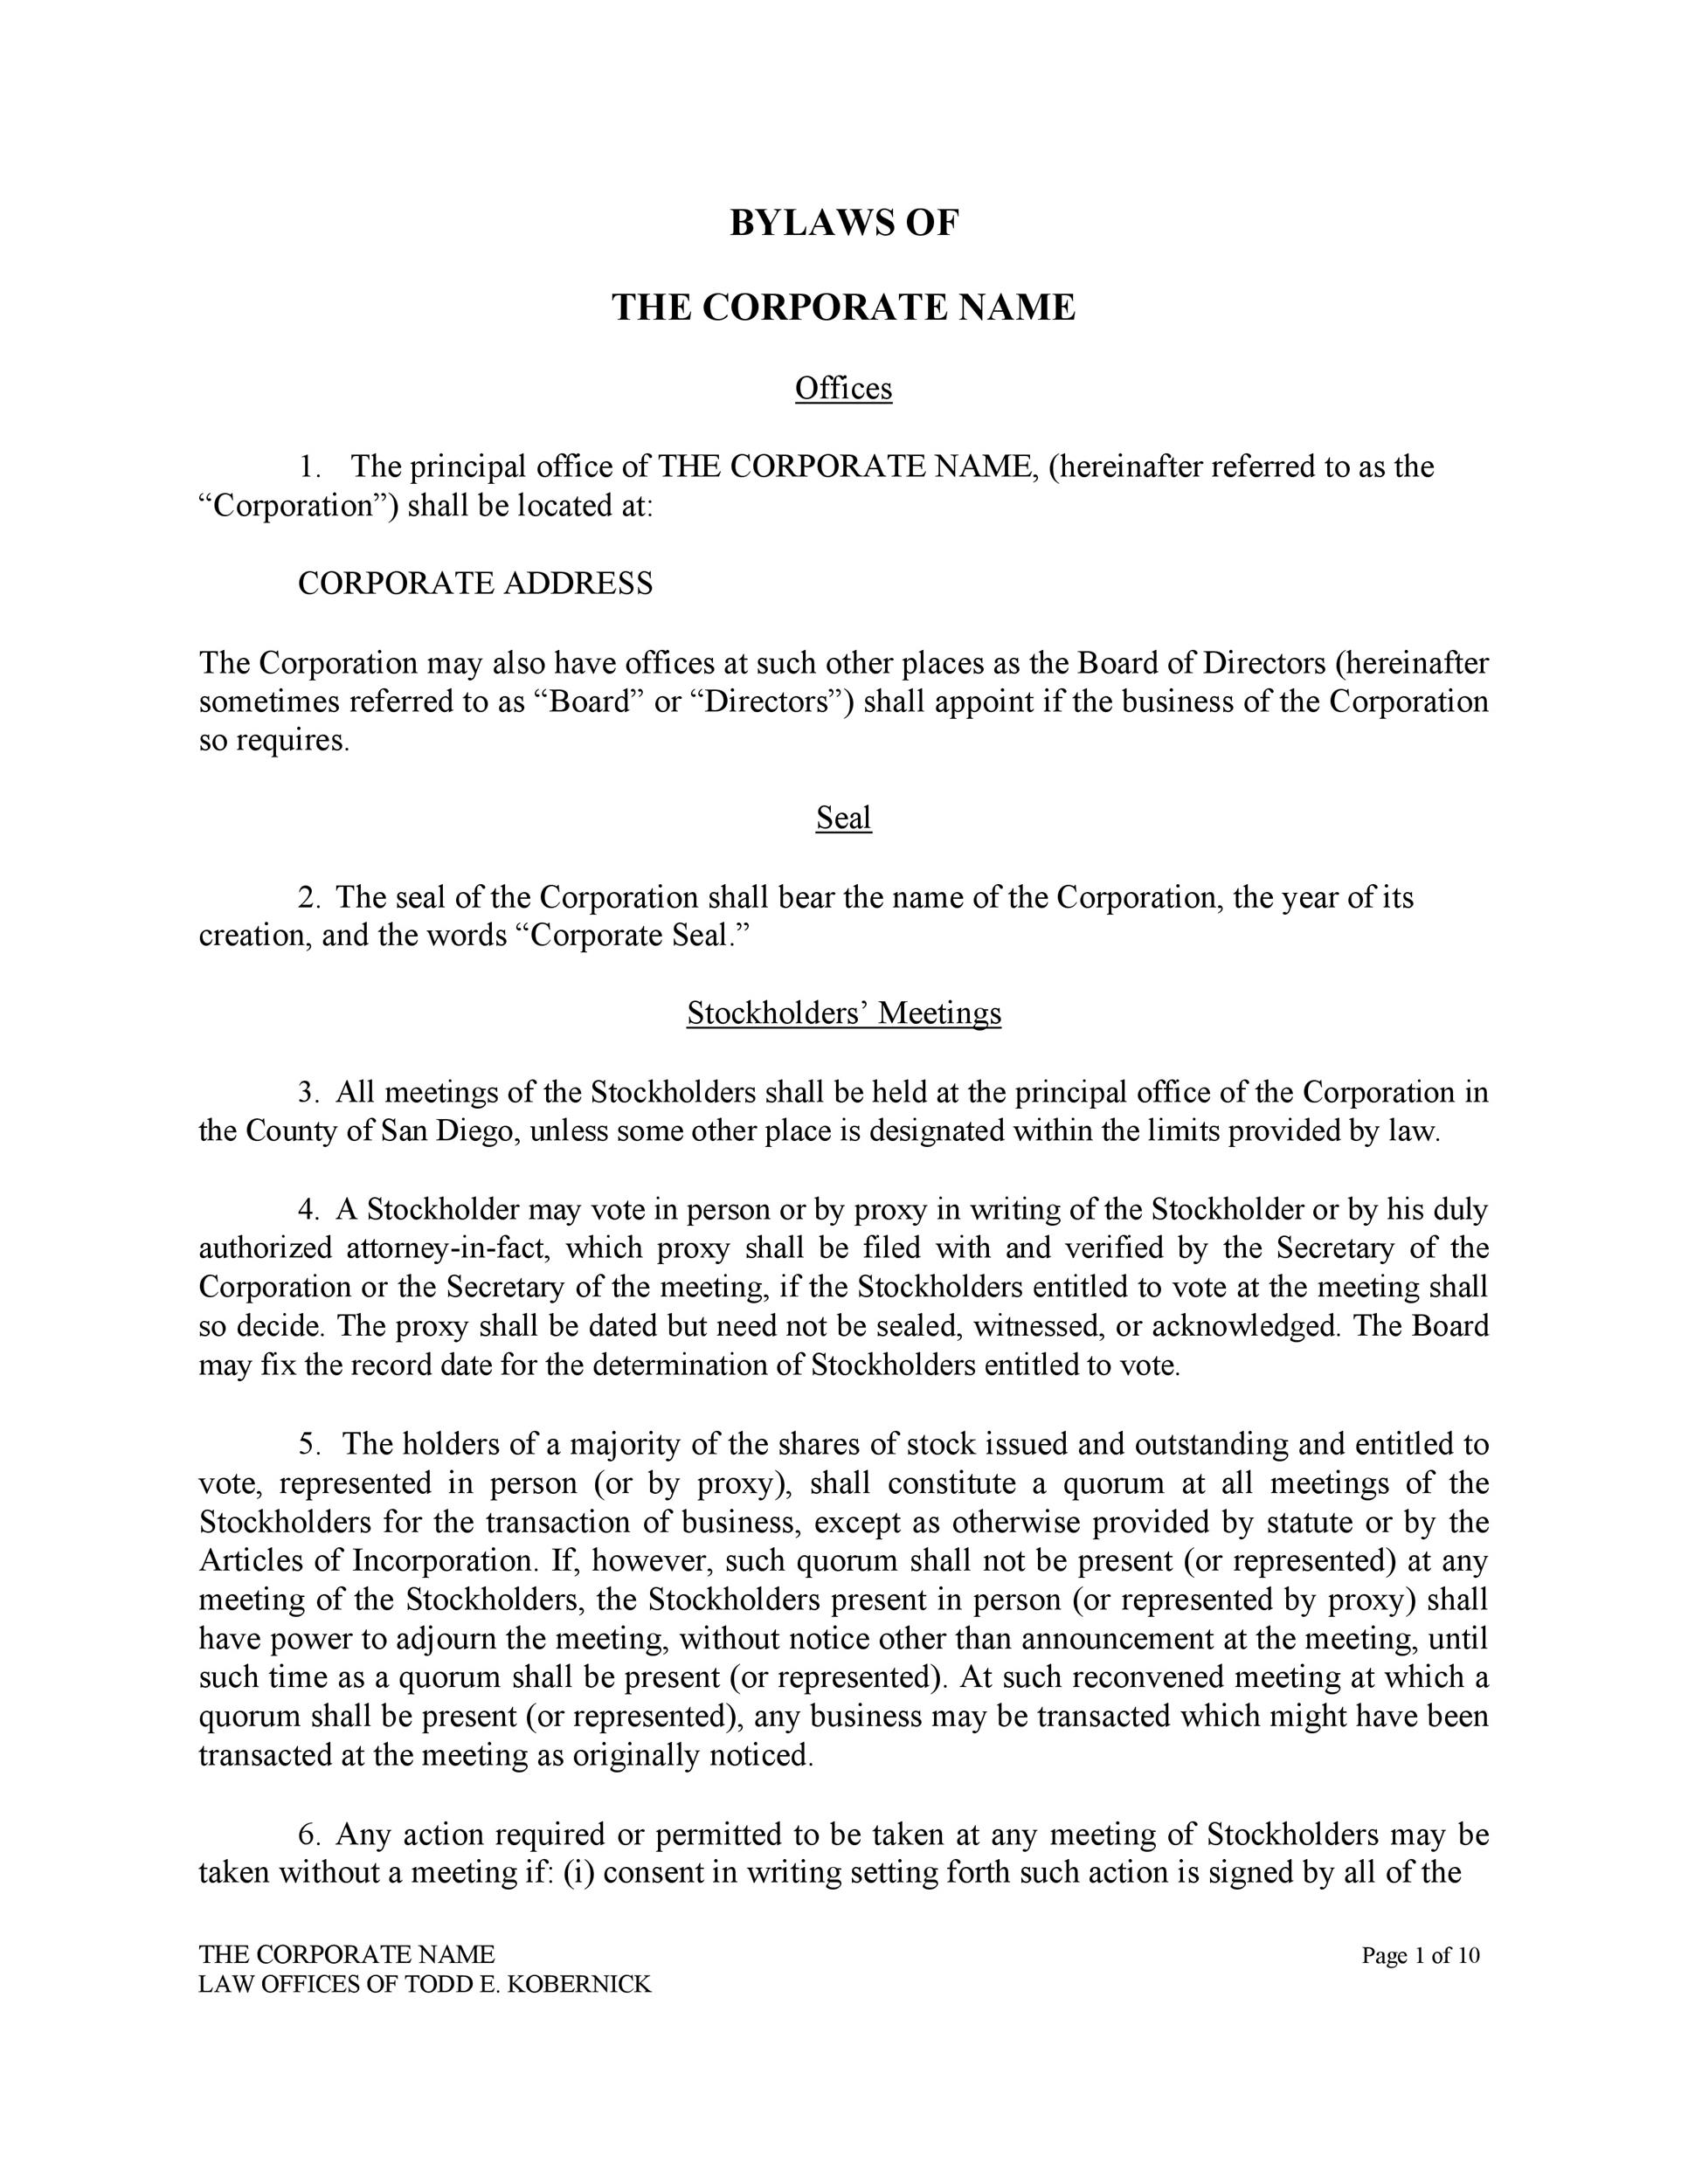 Free corporate bylaws 02